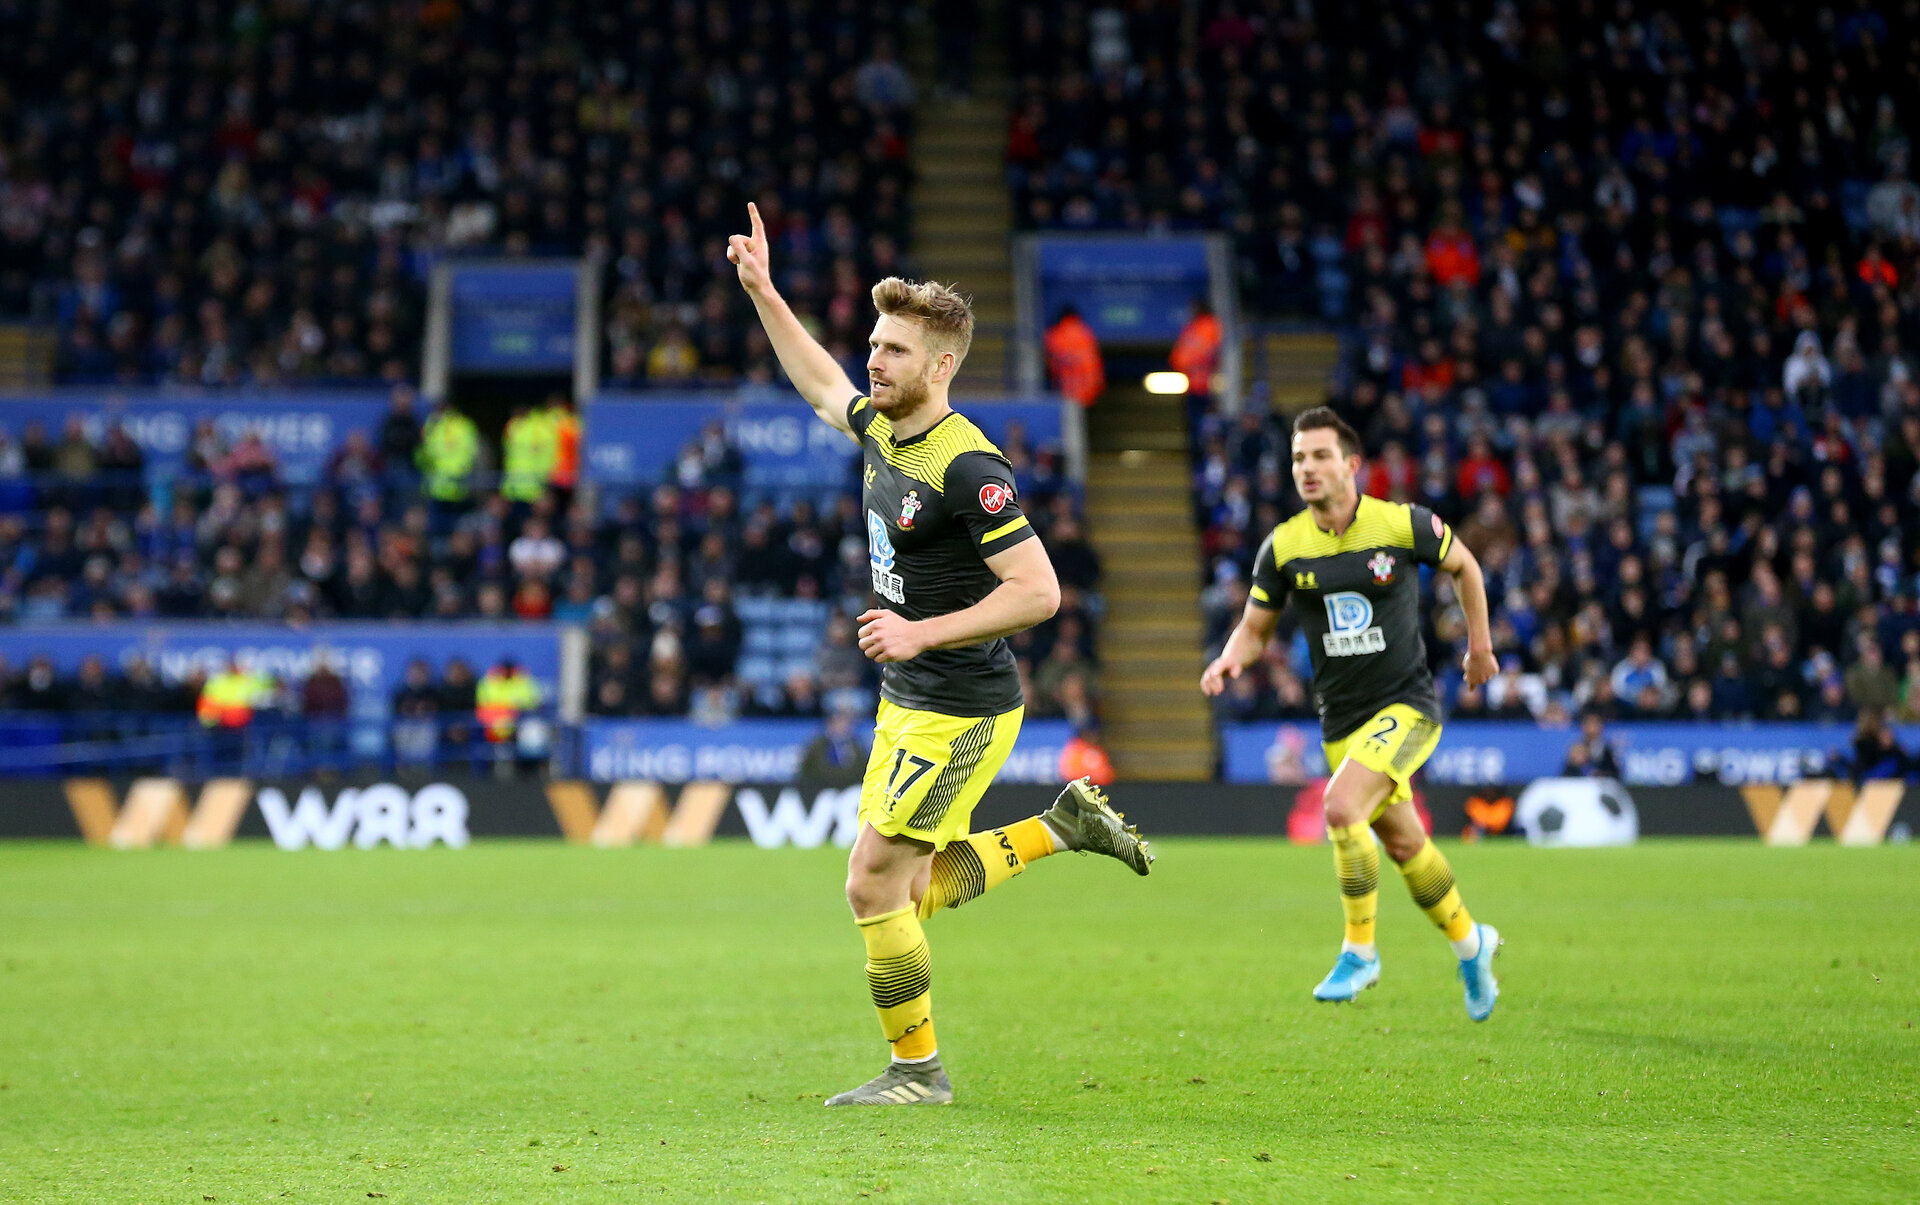 LEICESTER, ENGLAND - JANUARY 11: Stuart Armstrong of Southampton celebrates his goal during the Premier League match between Leicester City and Southampton FC at The King Power Stadium on January 11, 2020 in Leicester, United Kingdom. (Photo by Matt Watson/Southampton FC via Getty Images)